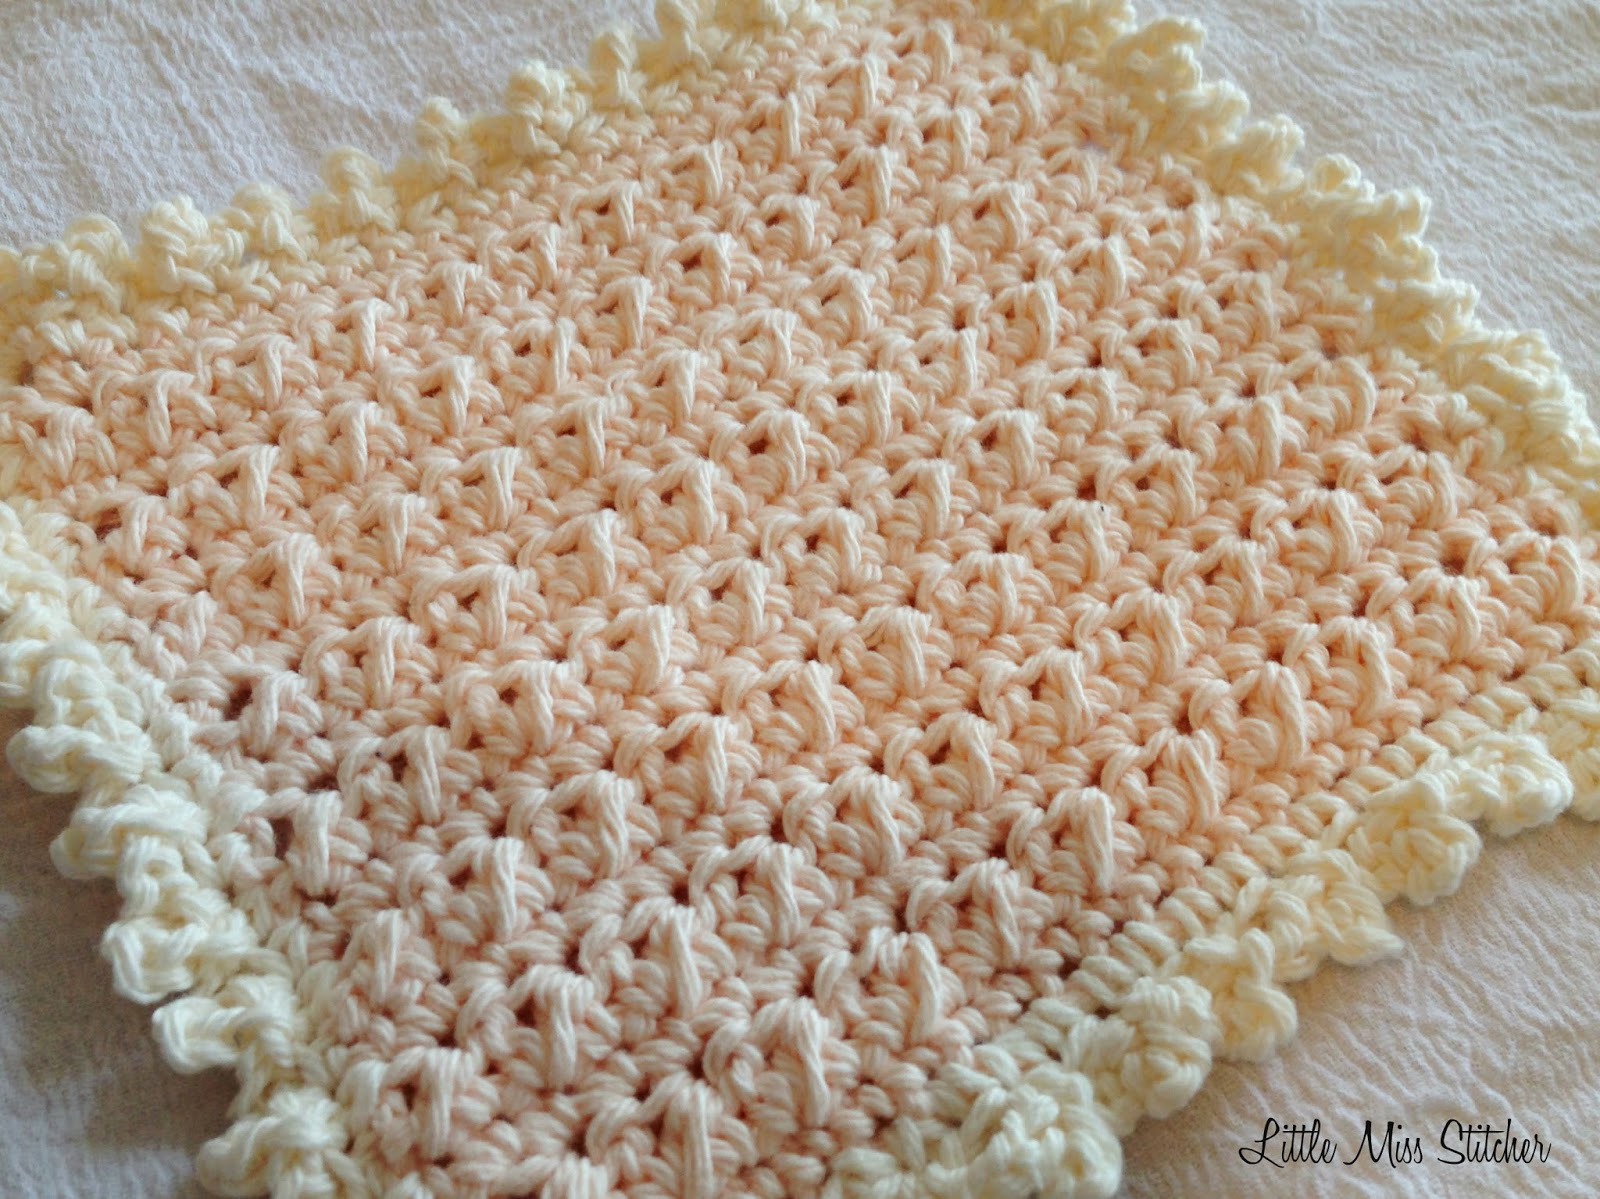 http://little-miss-stitcher.blogspot.com/2015/01/delightful-dishcloth-crochet-free.html?spref=pi&m=1